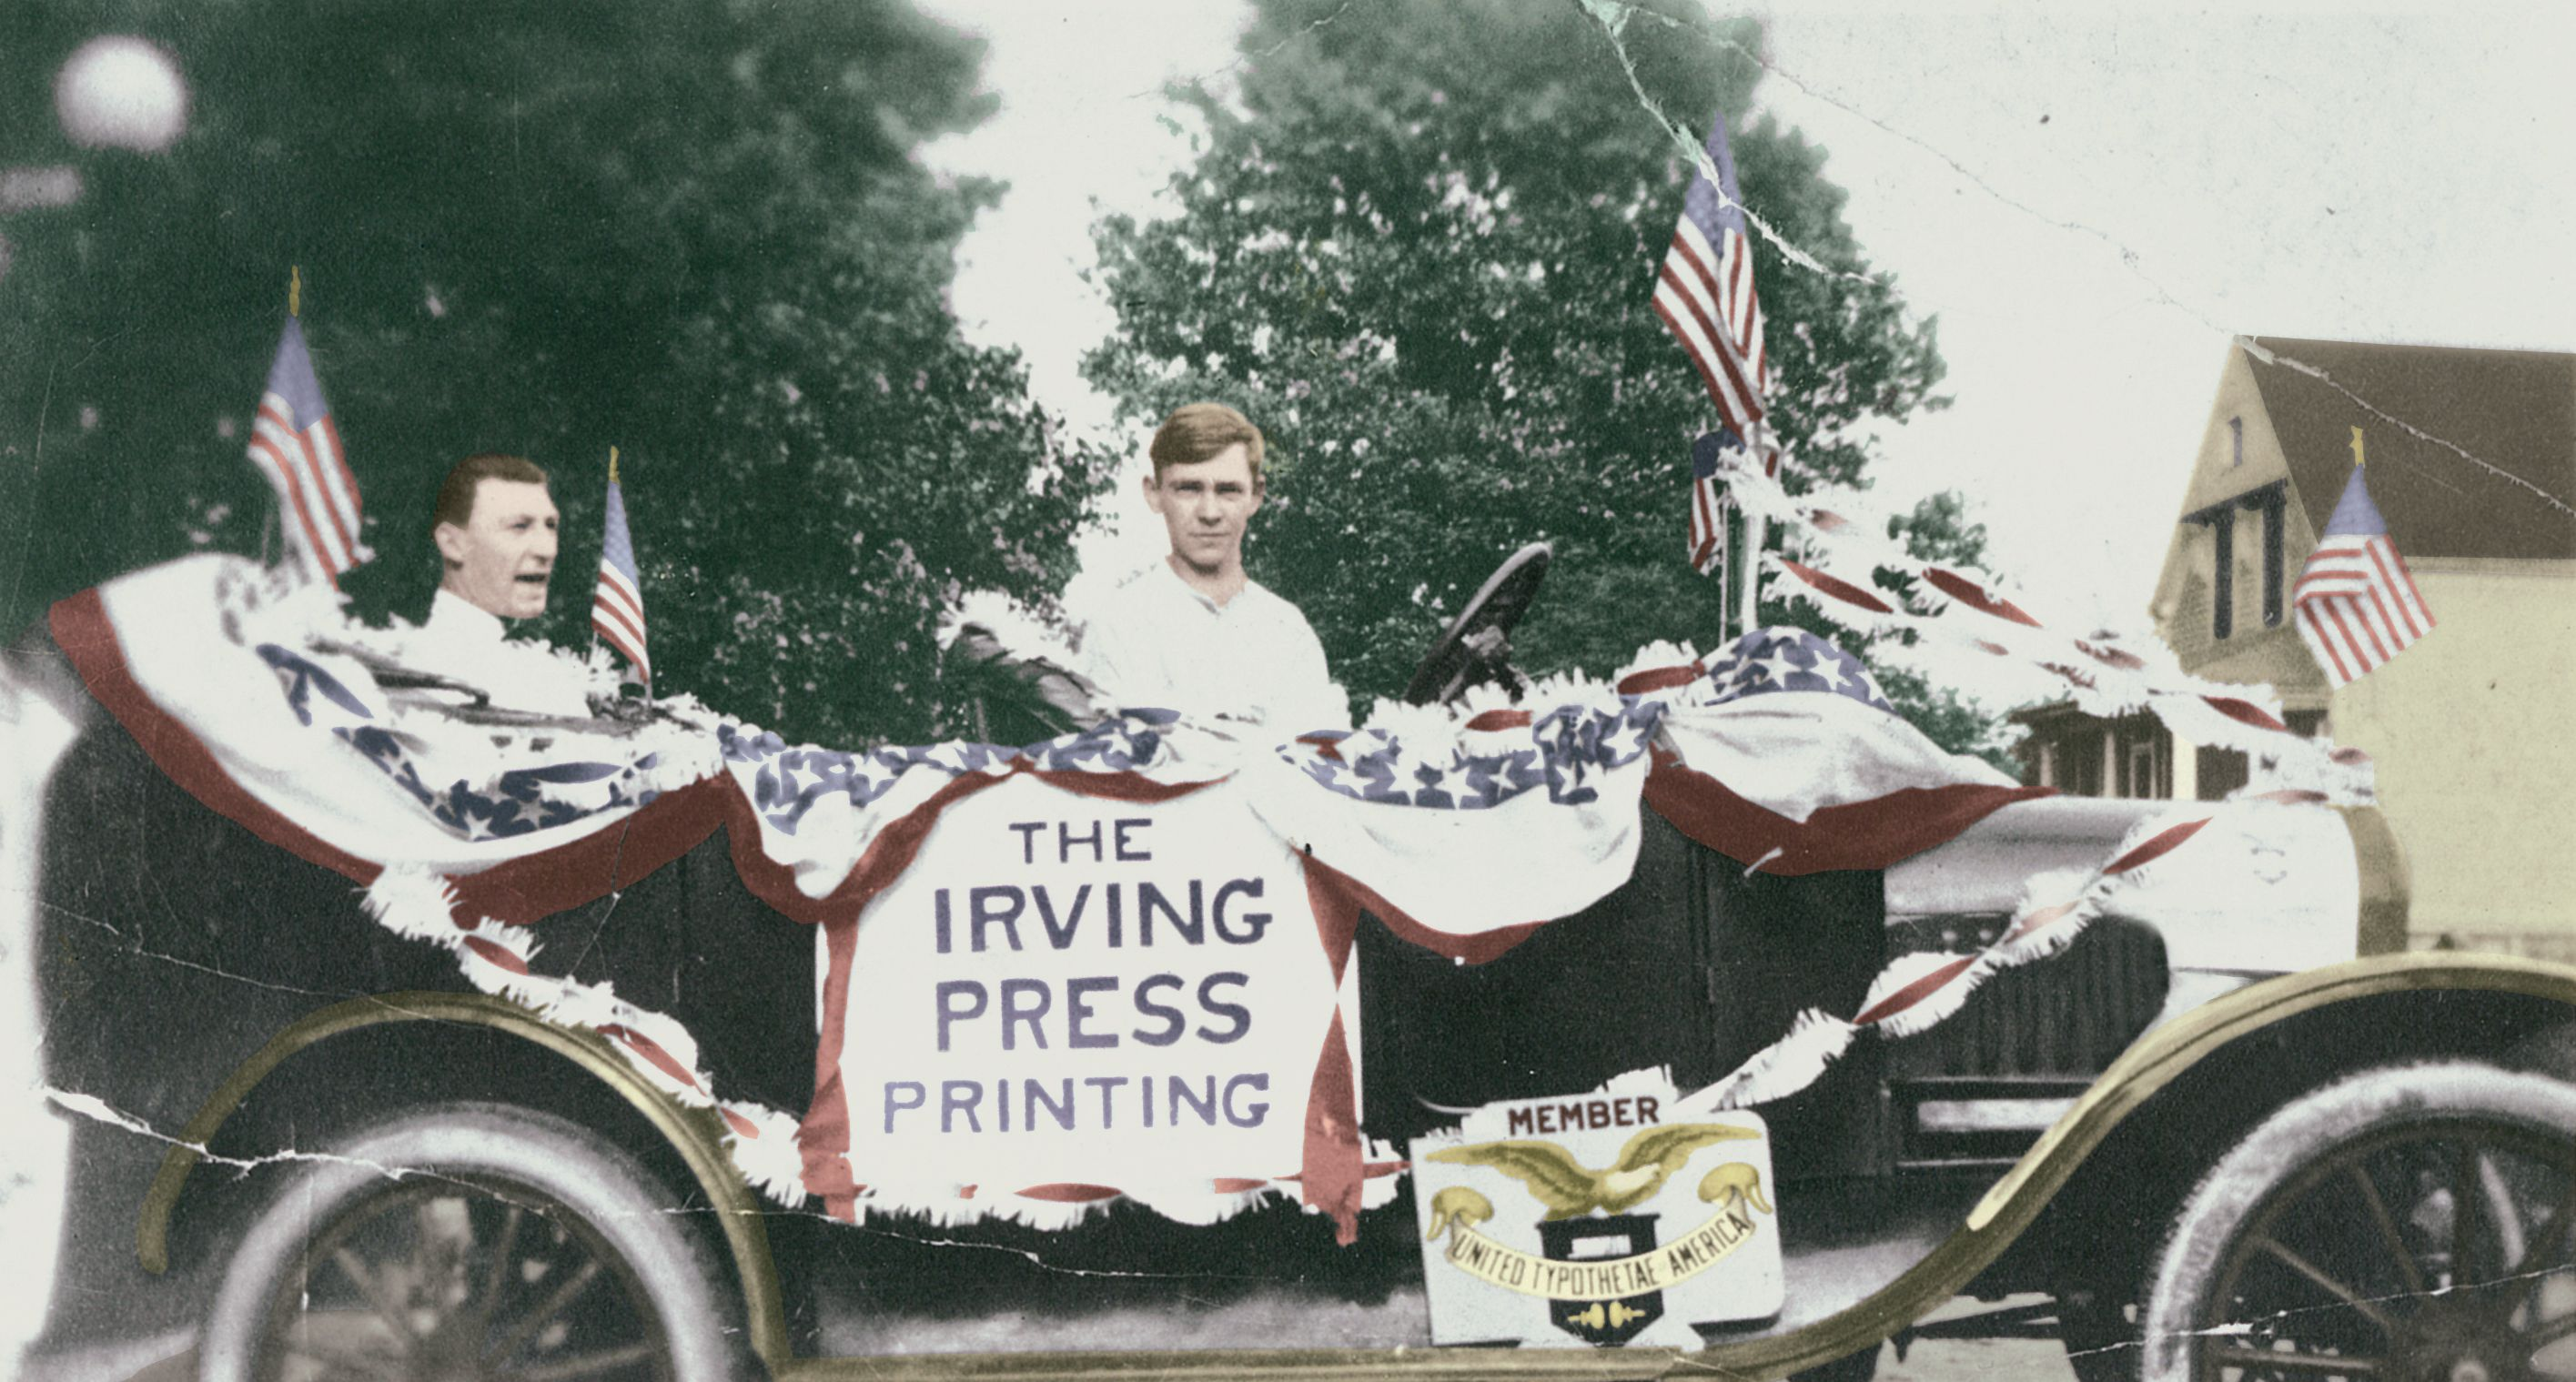 100 Years of Printing Experience!